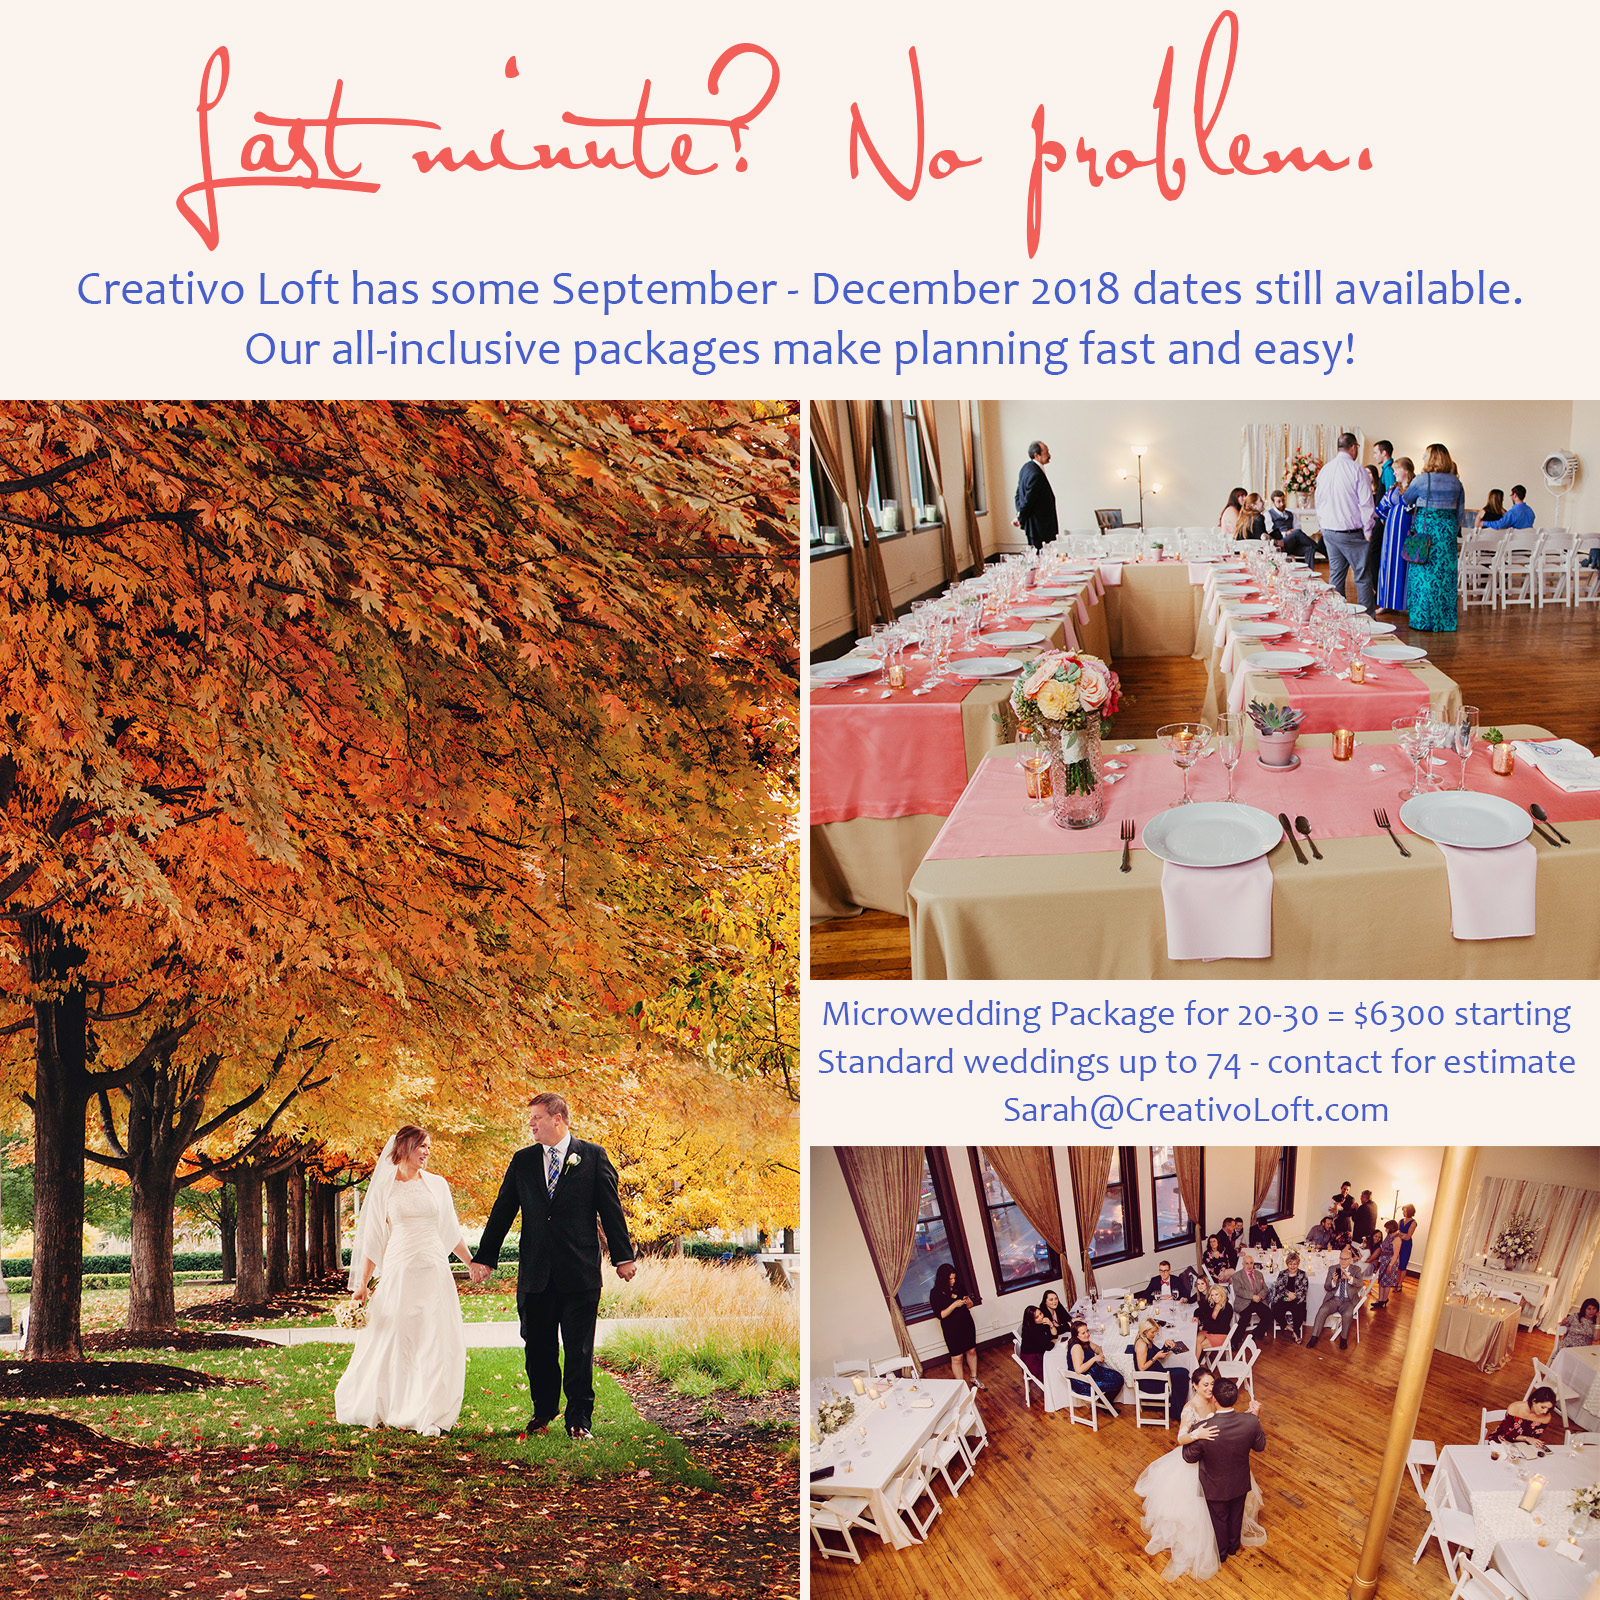 Last minute 2018 Chicago wedding dates available at Creativo Loft